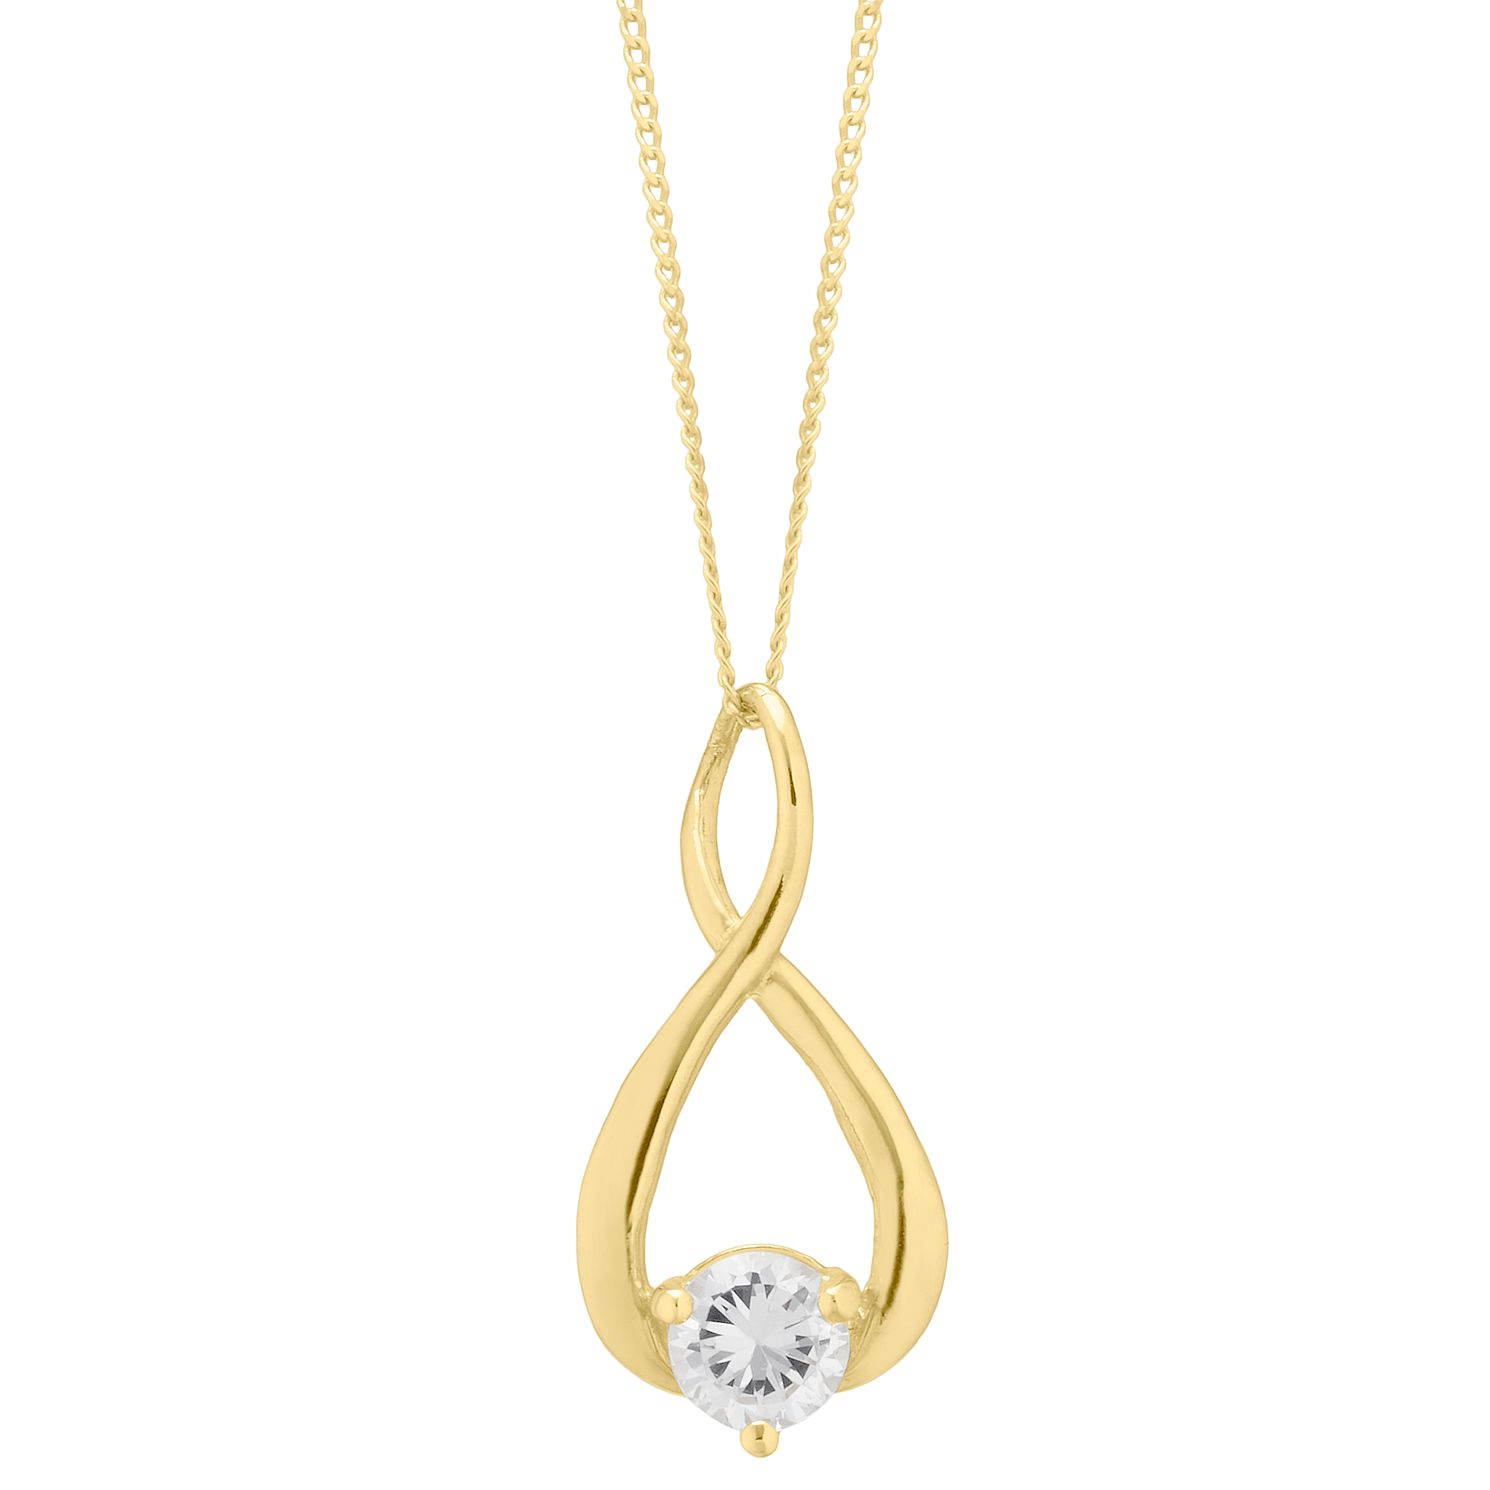 9ct Yellow Gold Cubic Zirconia Figure of 8 Pendant - Product number 4604547